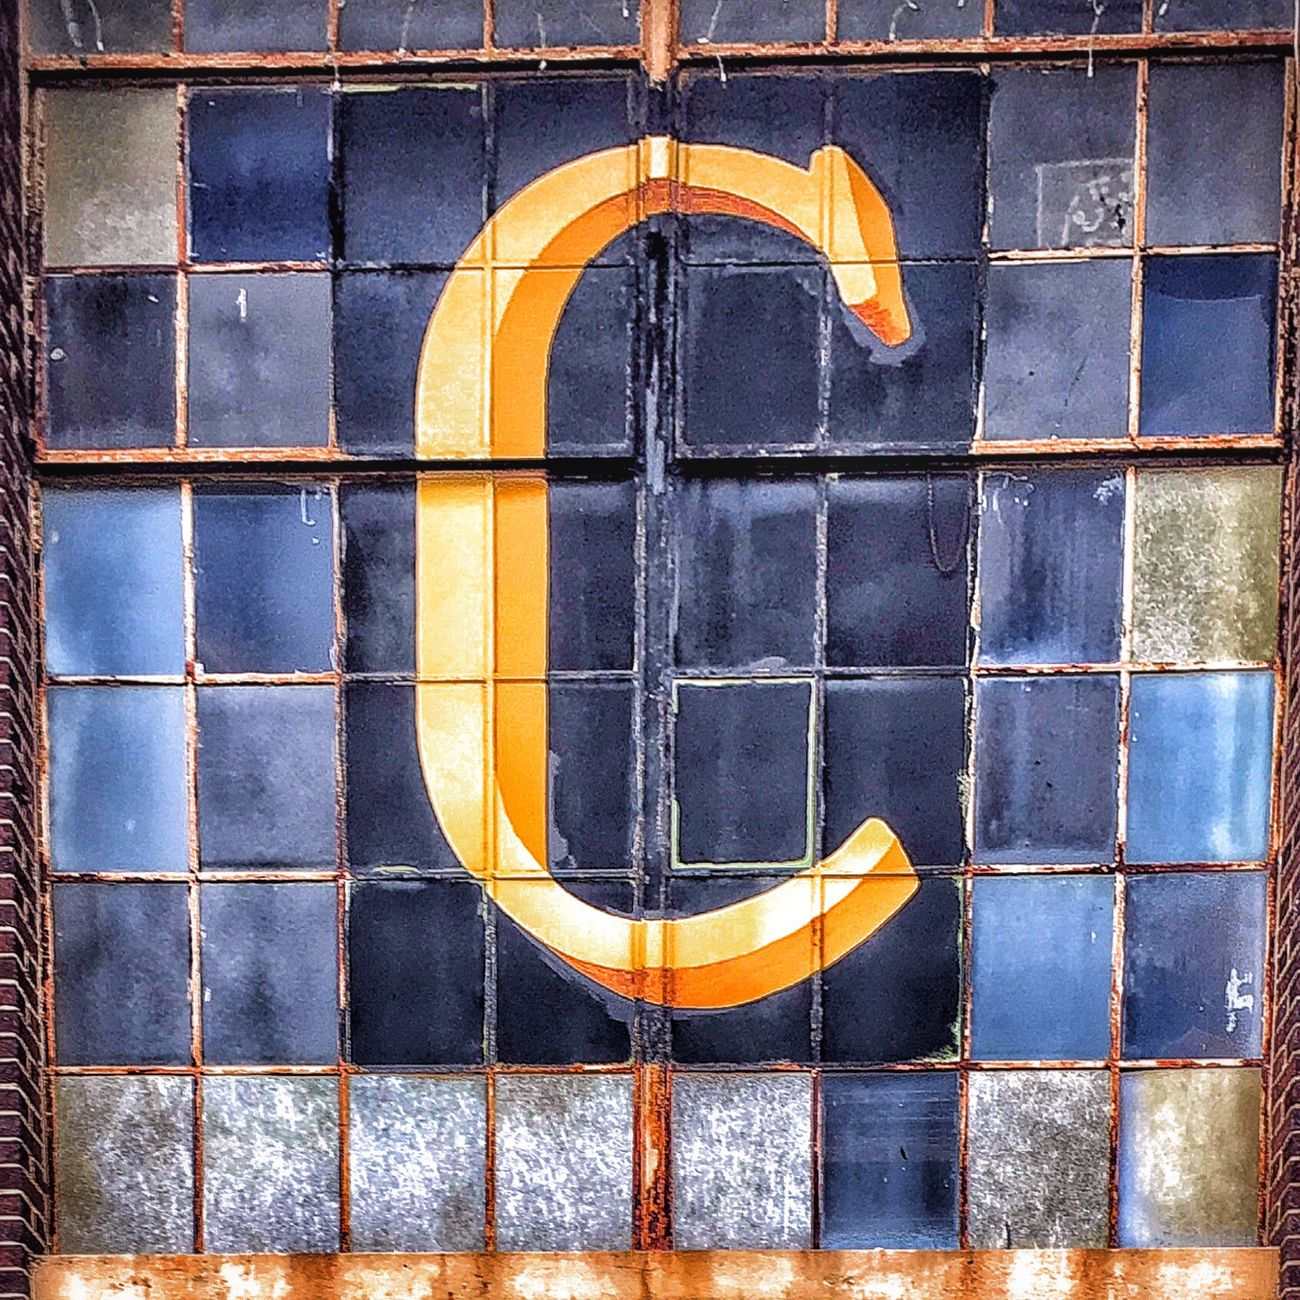 The Letter C Architecture Window Geometric Shape No People Weathered Old Windows Initial